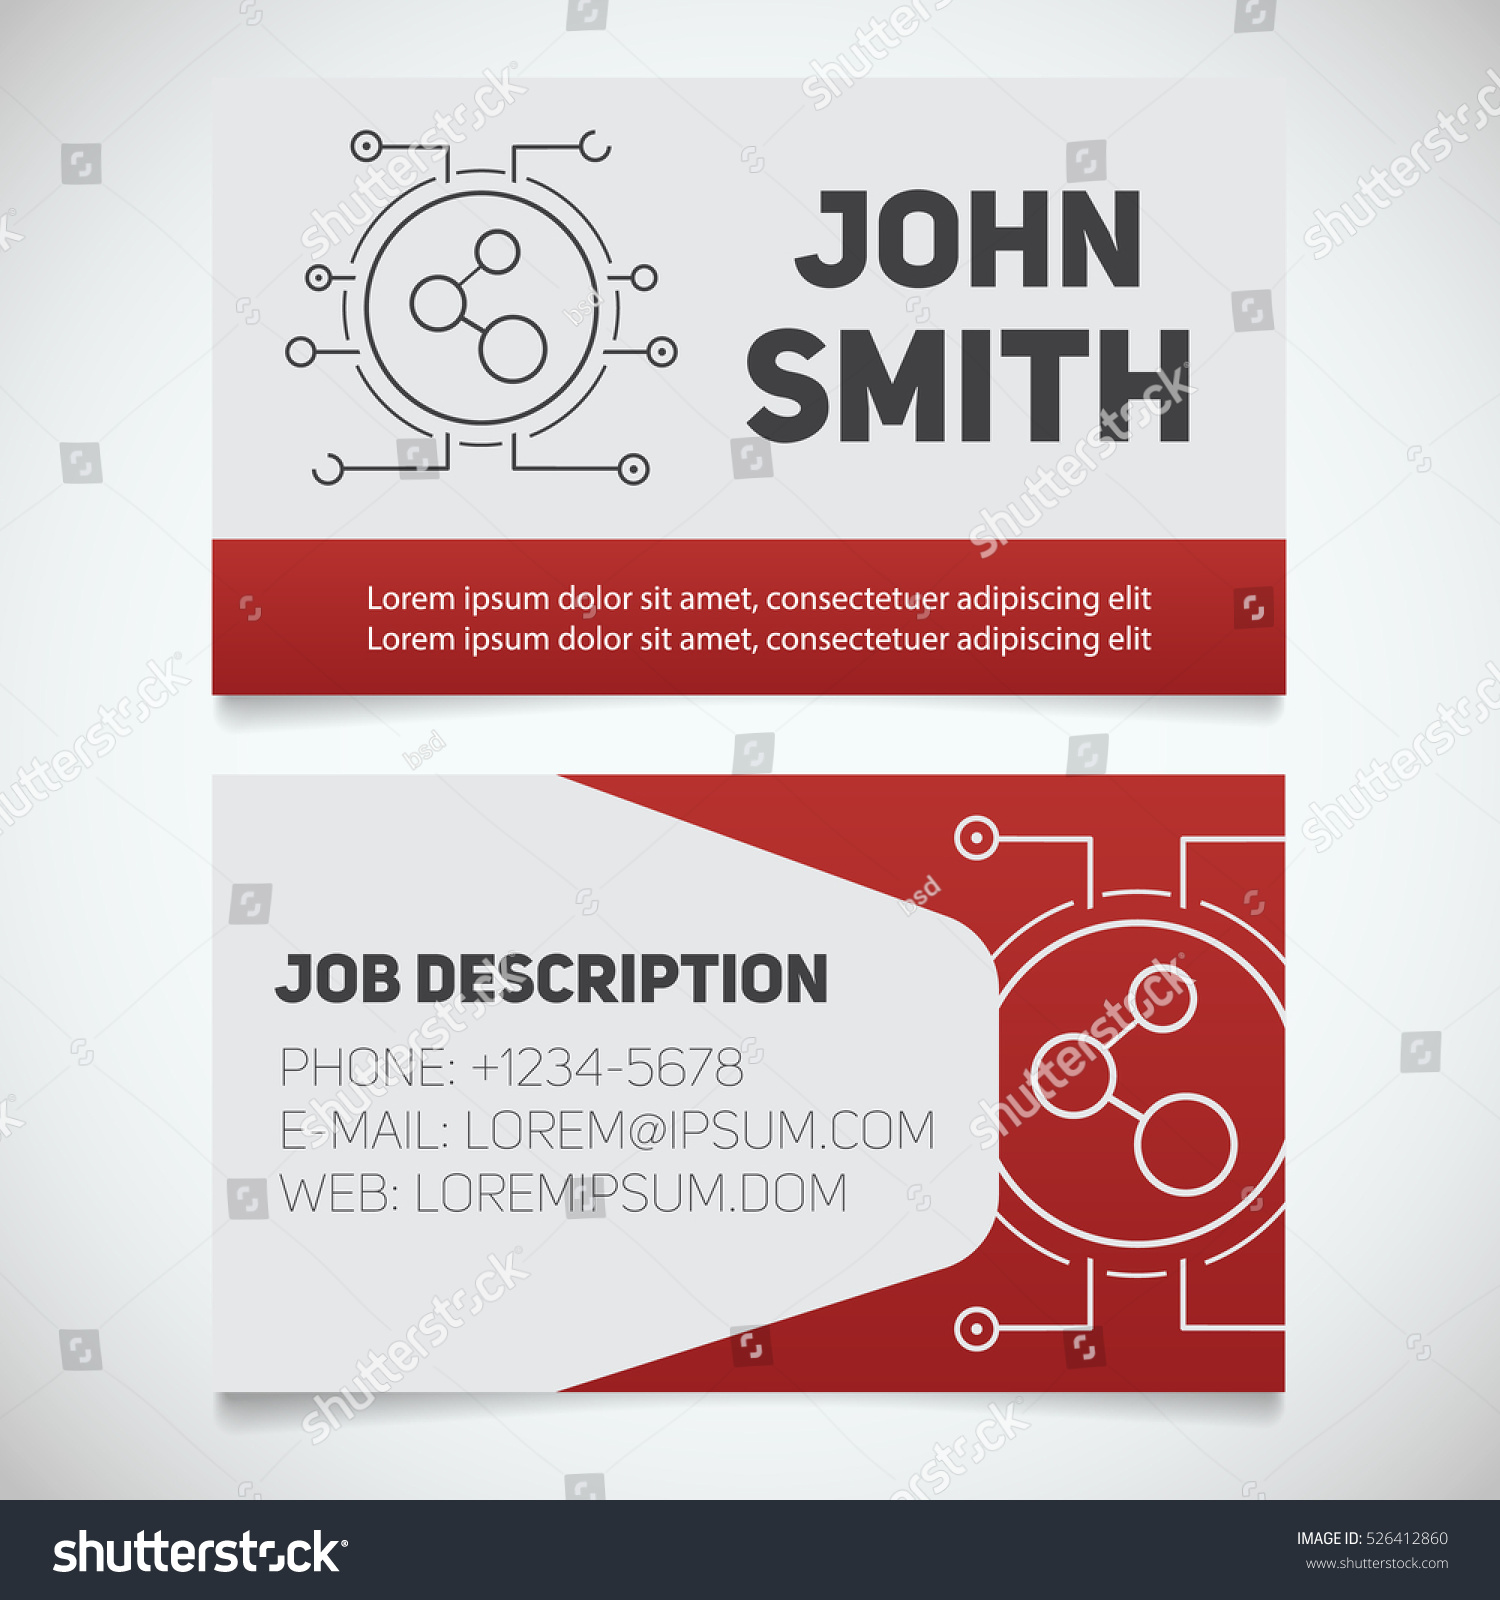 Networking business cards examples image collections business card networking business card template image collections business cards networking business cards examples gallery business card template colourmoves